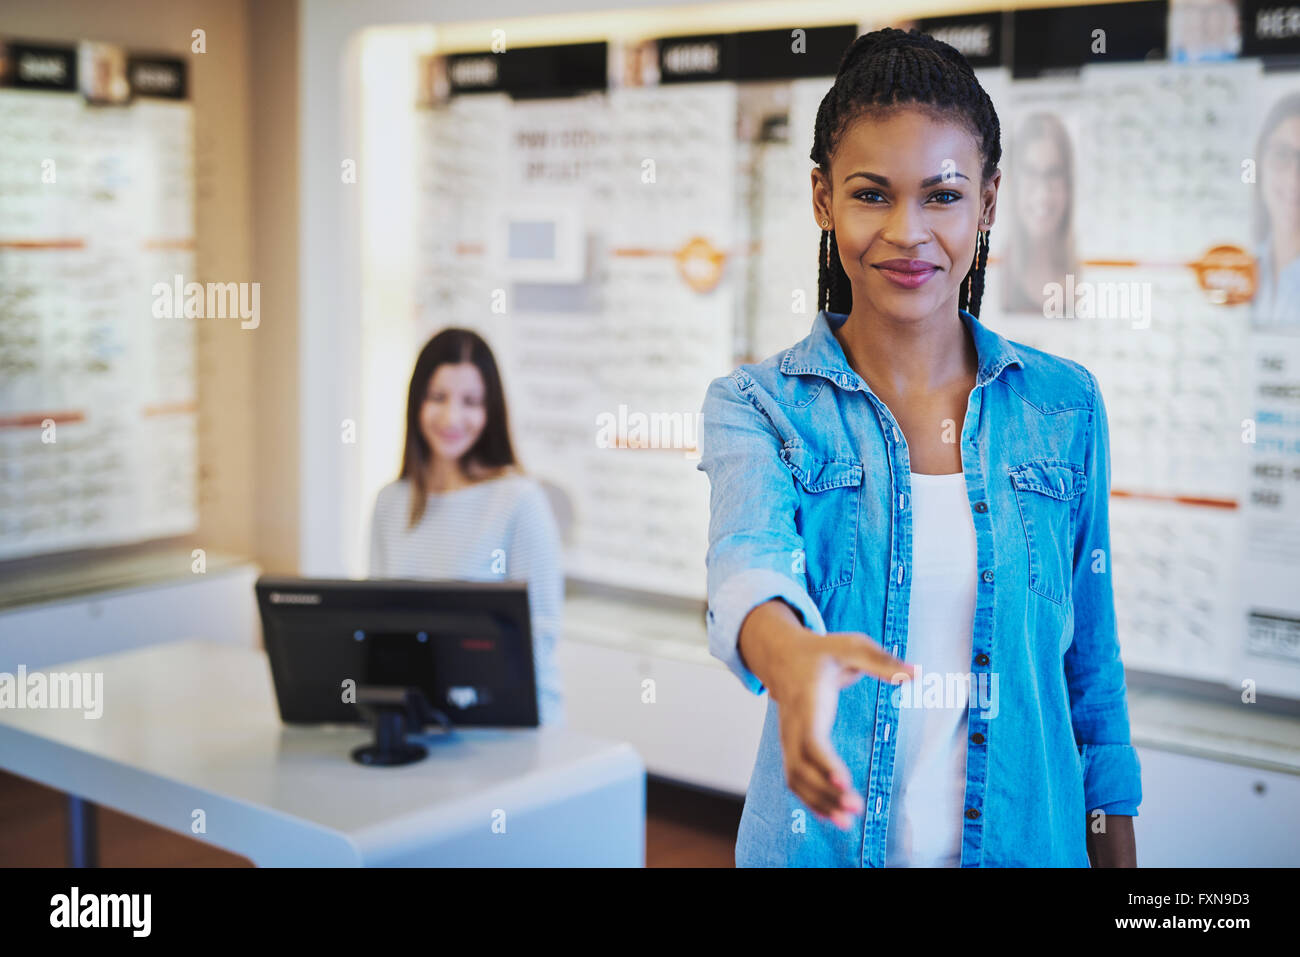 Young African woman welcoming you to her optometry store with an outstretched hand and friendly warm smile - Stock Image